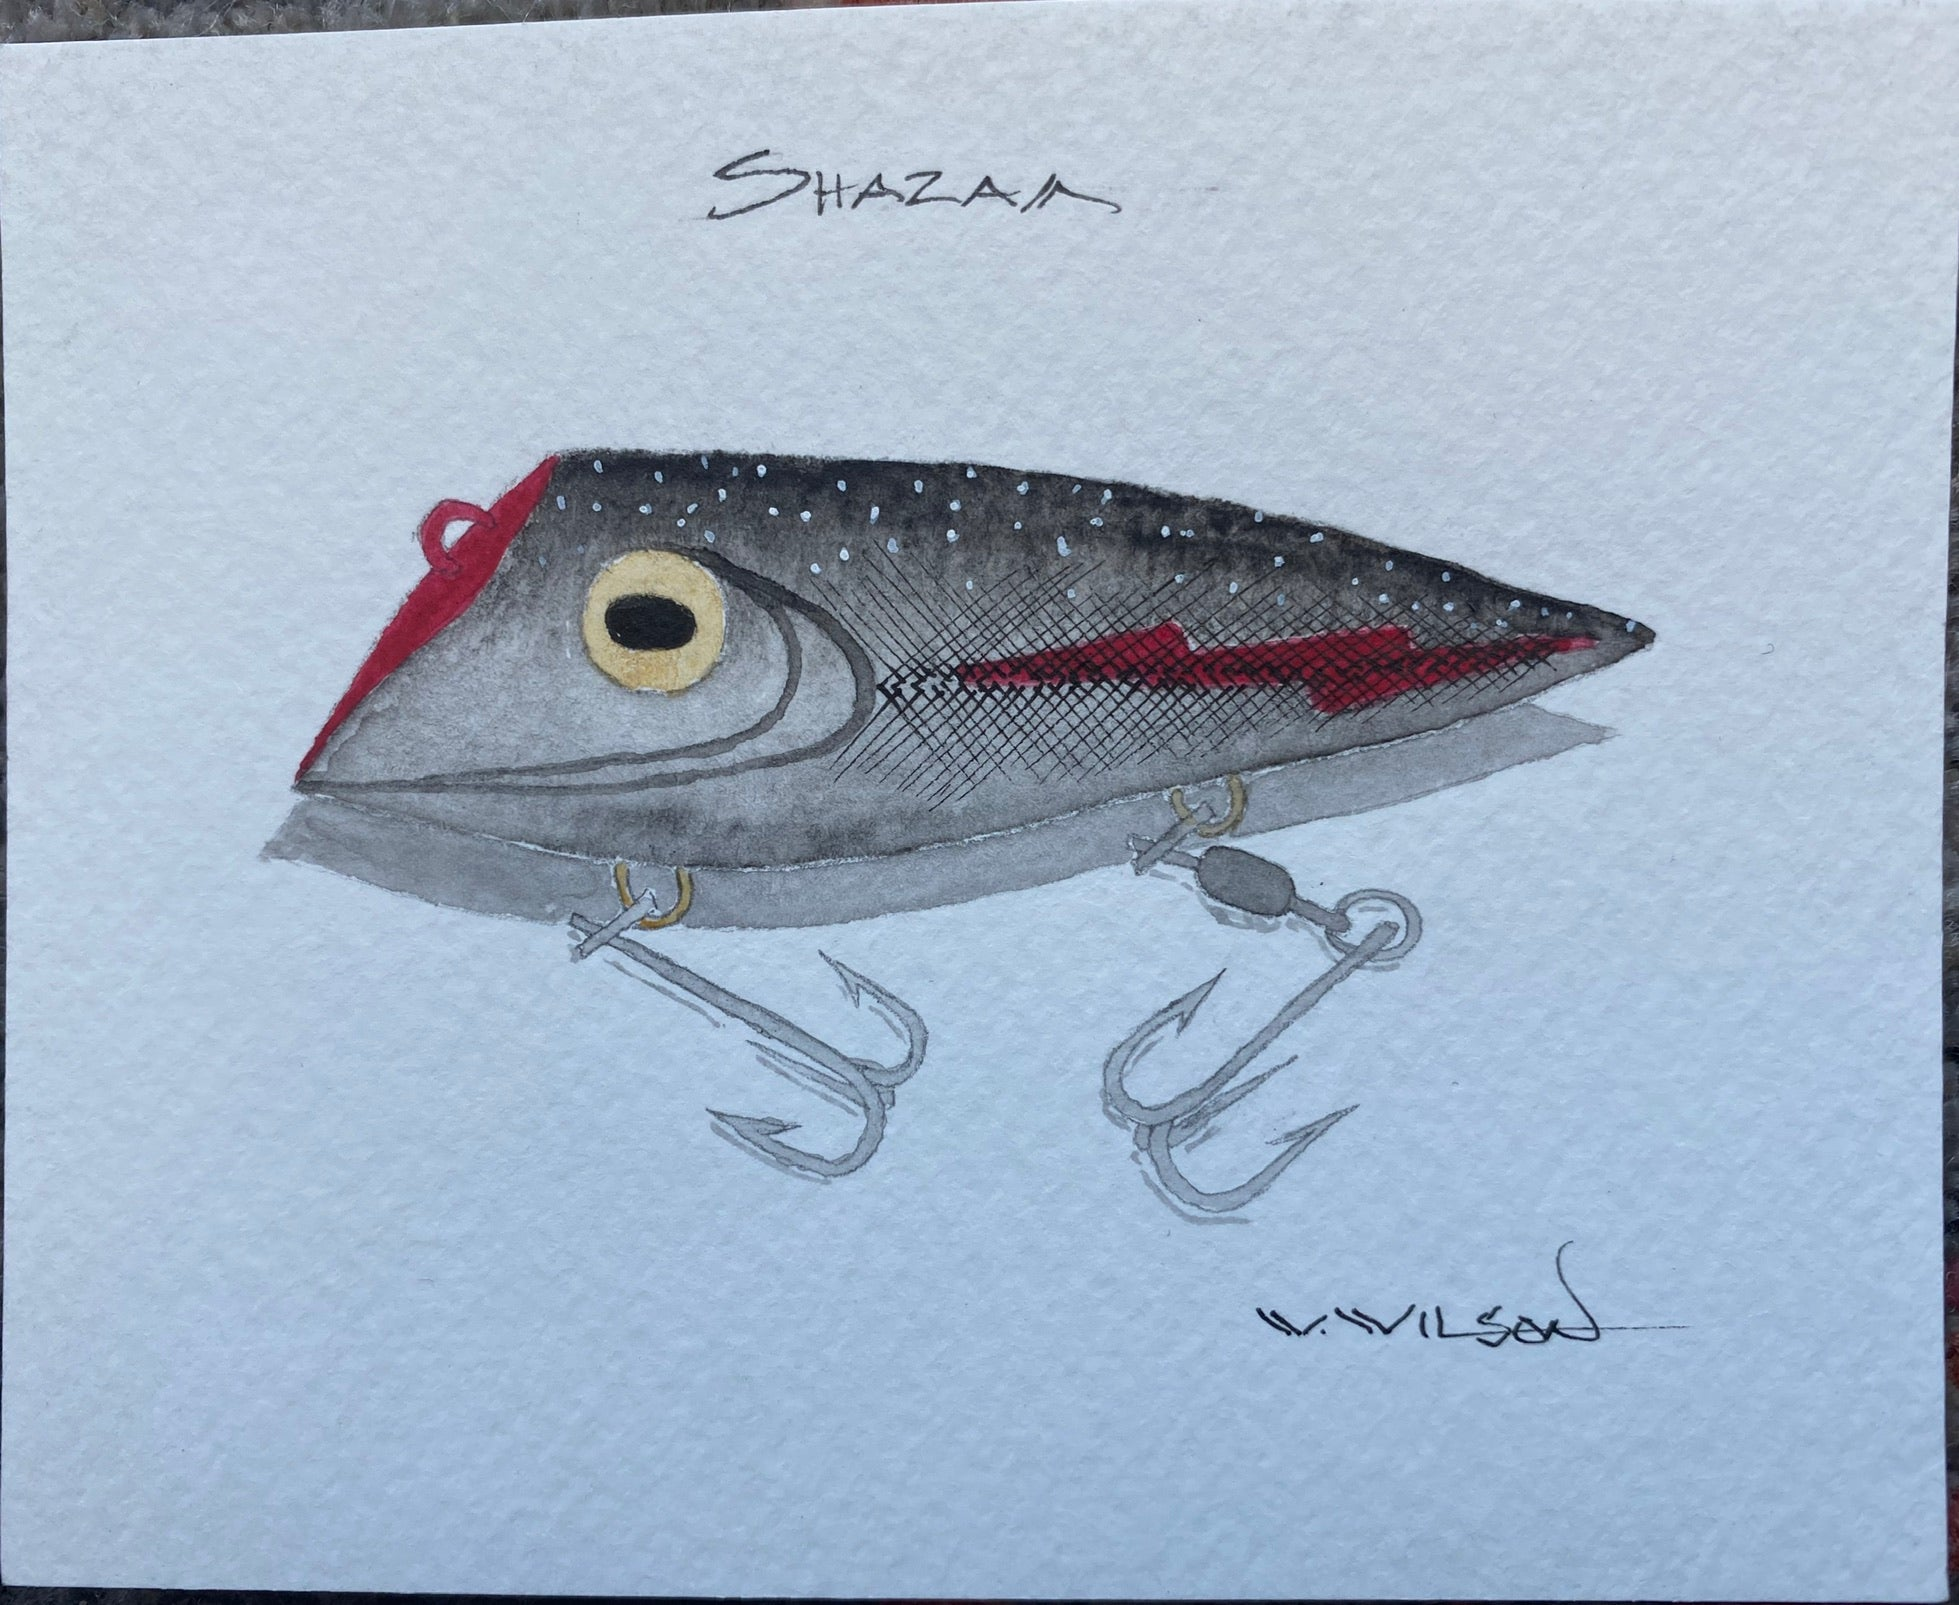 Lyman Lures - new design release - Shazam